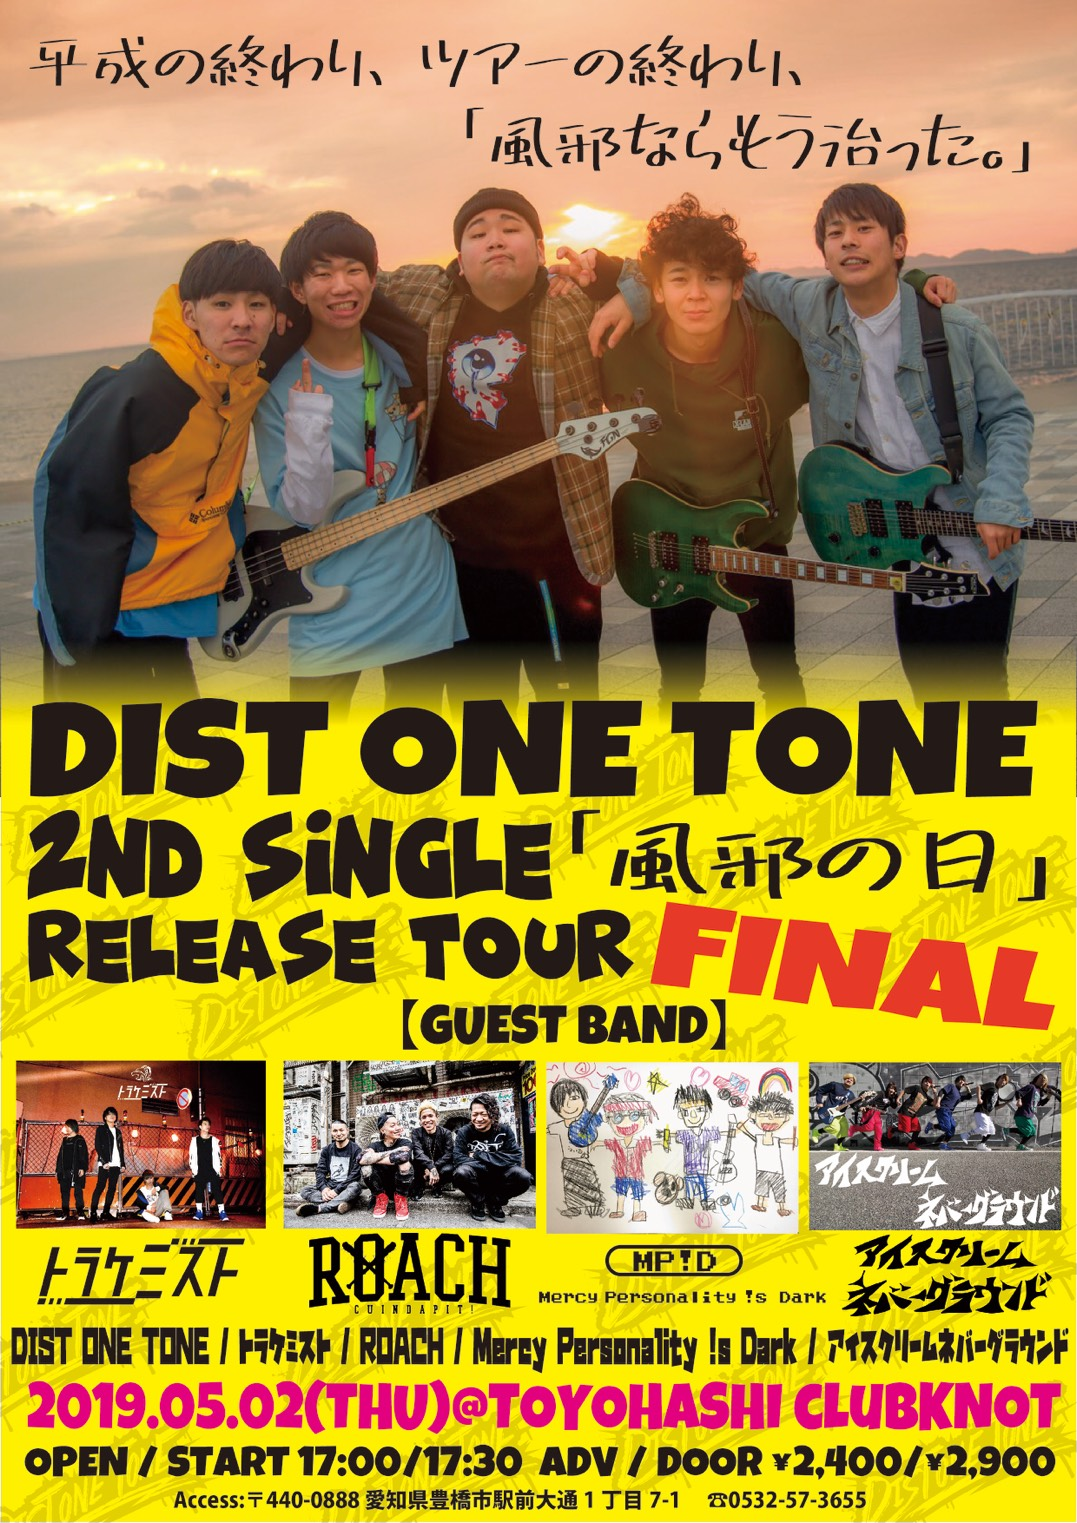 DIST ONE TONE 2nd Single「風邪の日」Release Tour Final!!